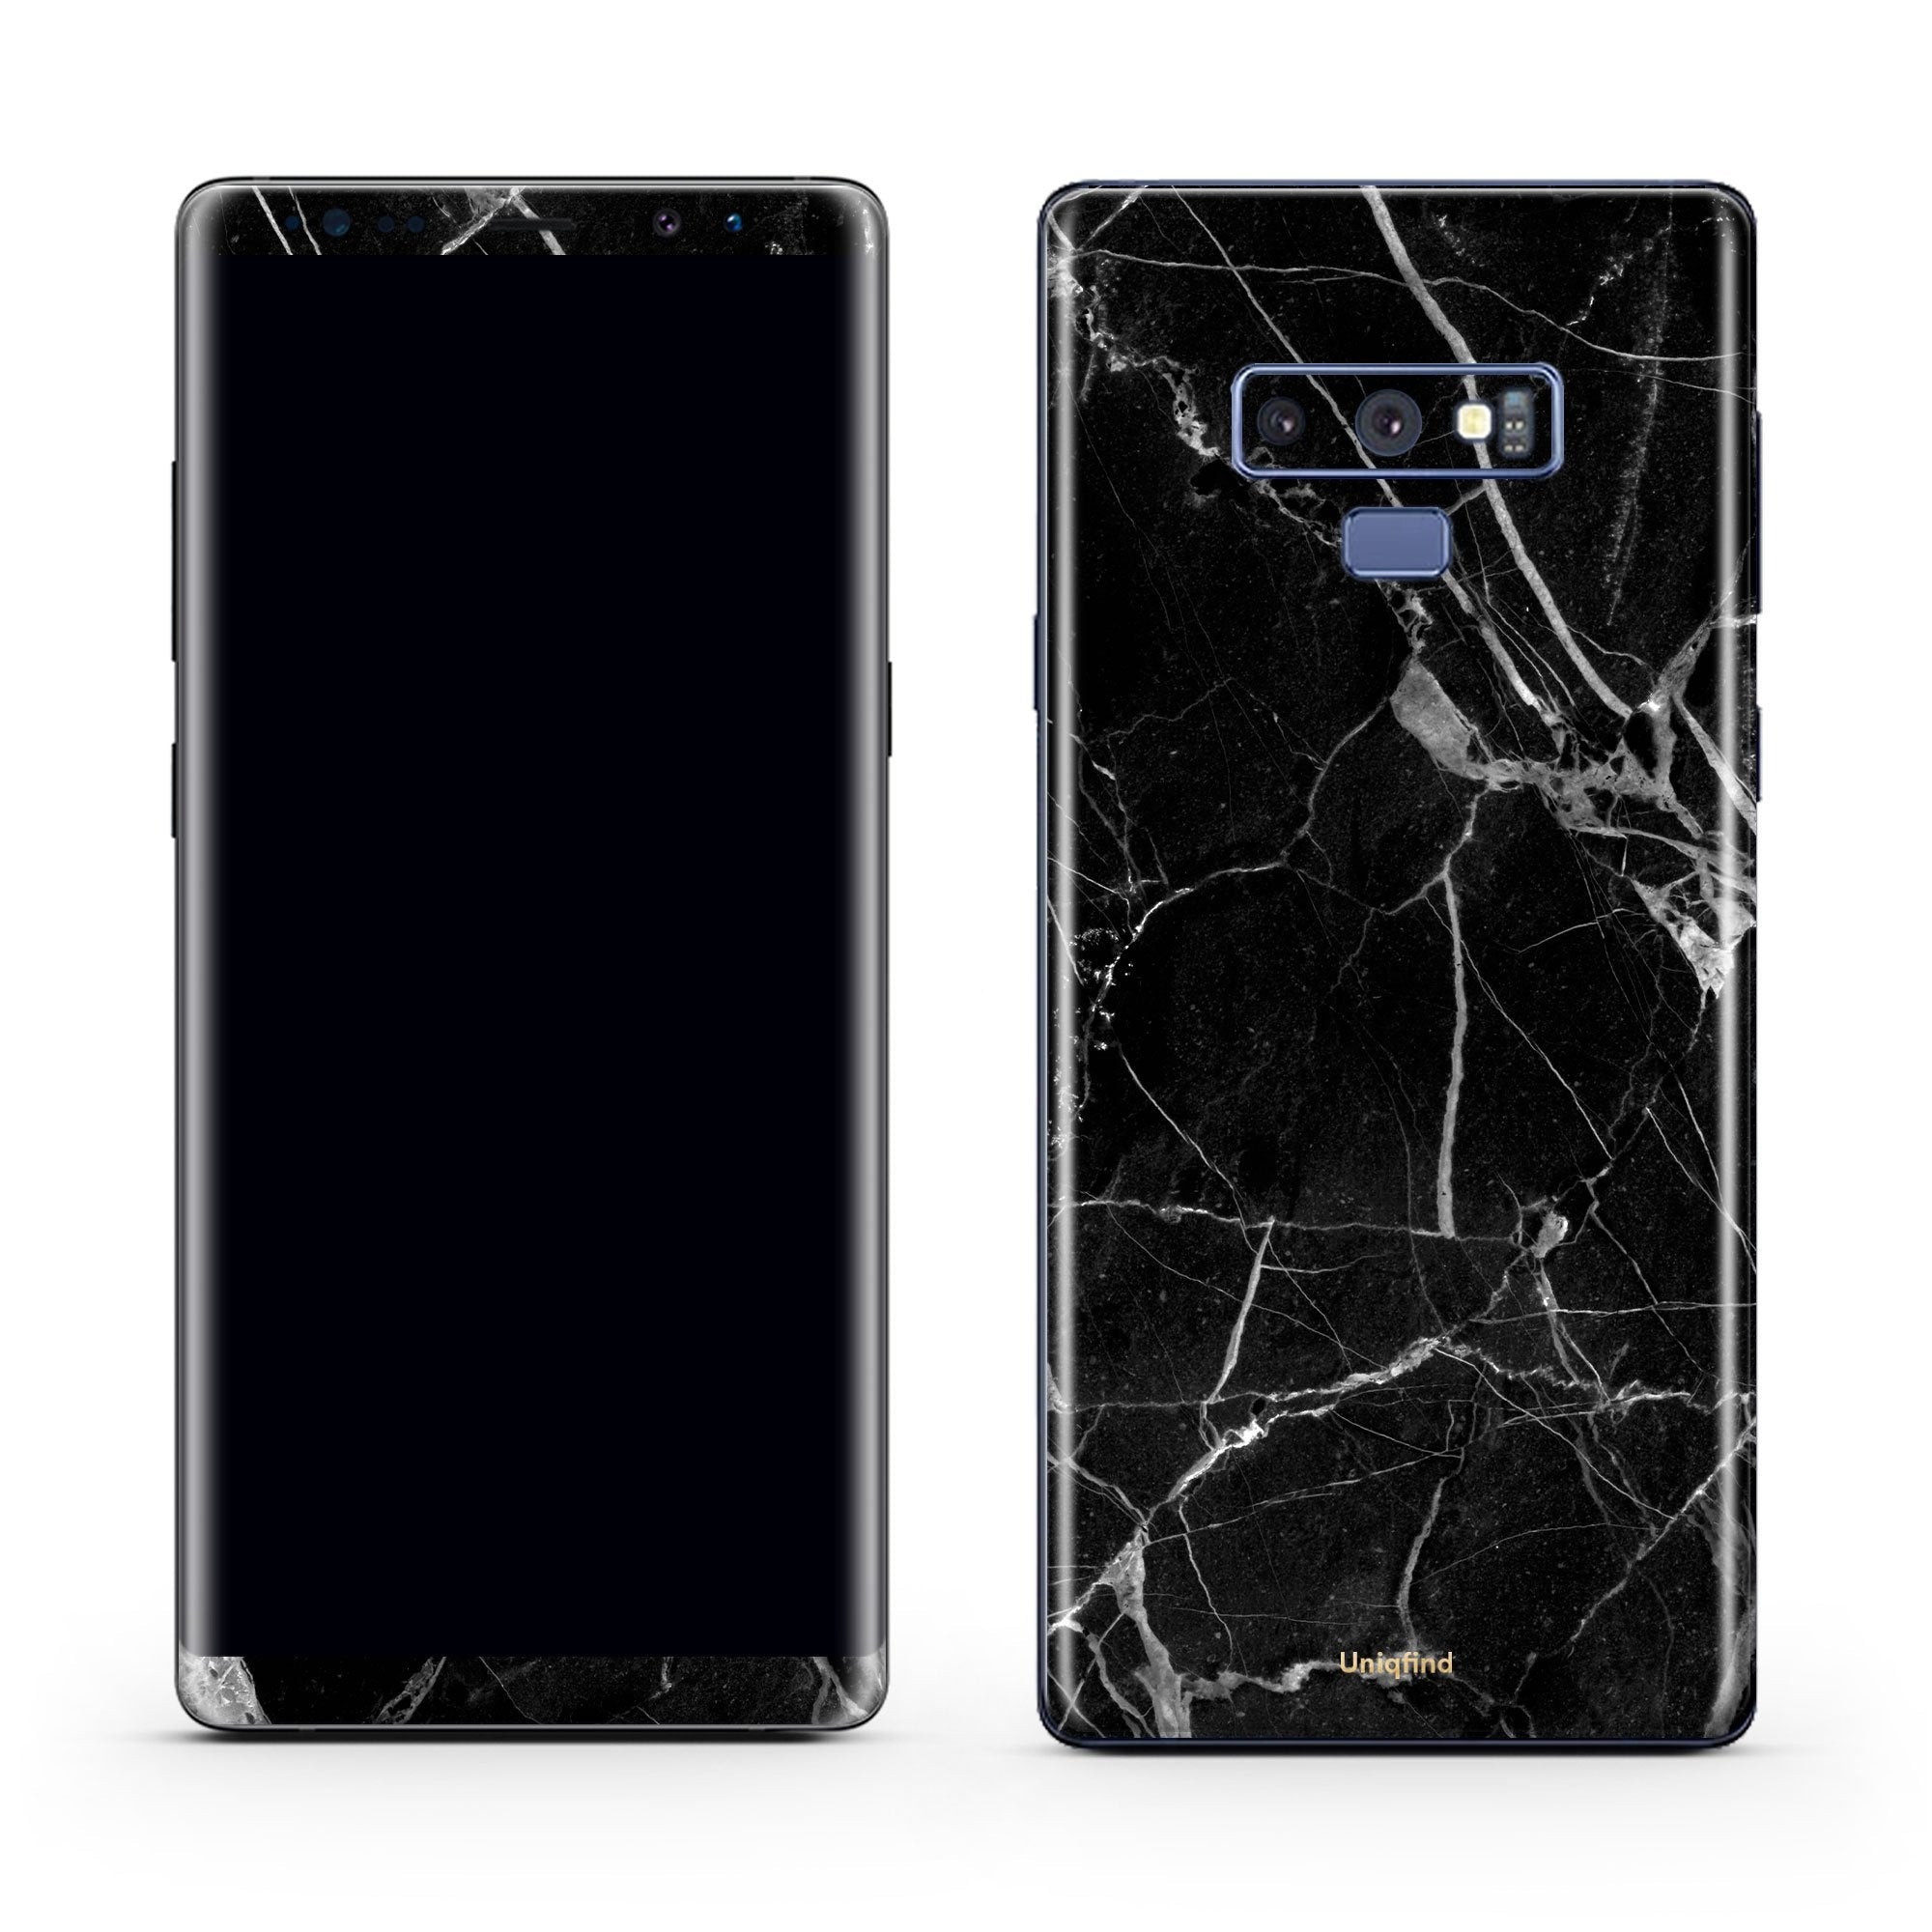 Note 9 Skins in Black Marble